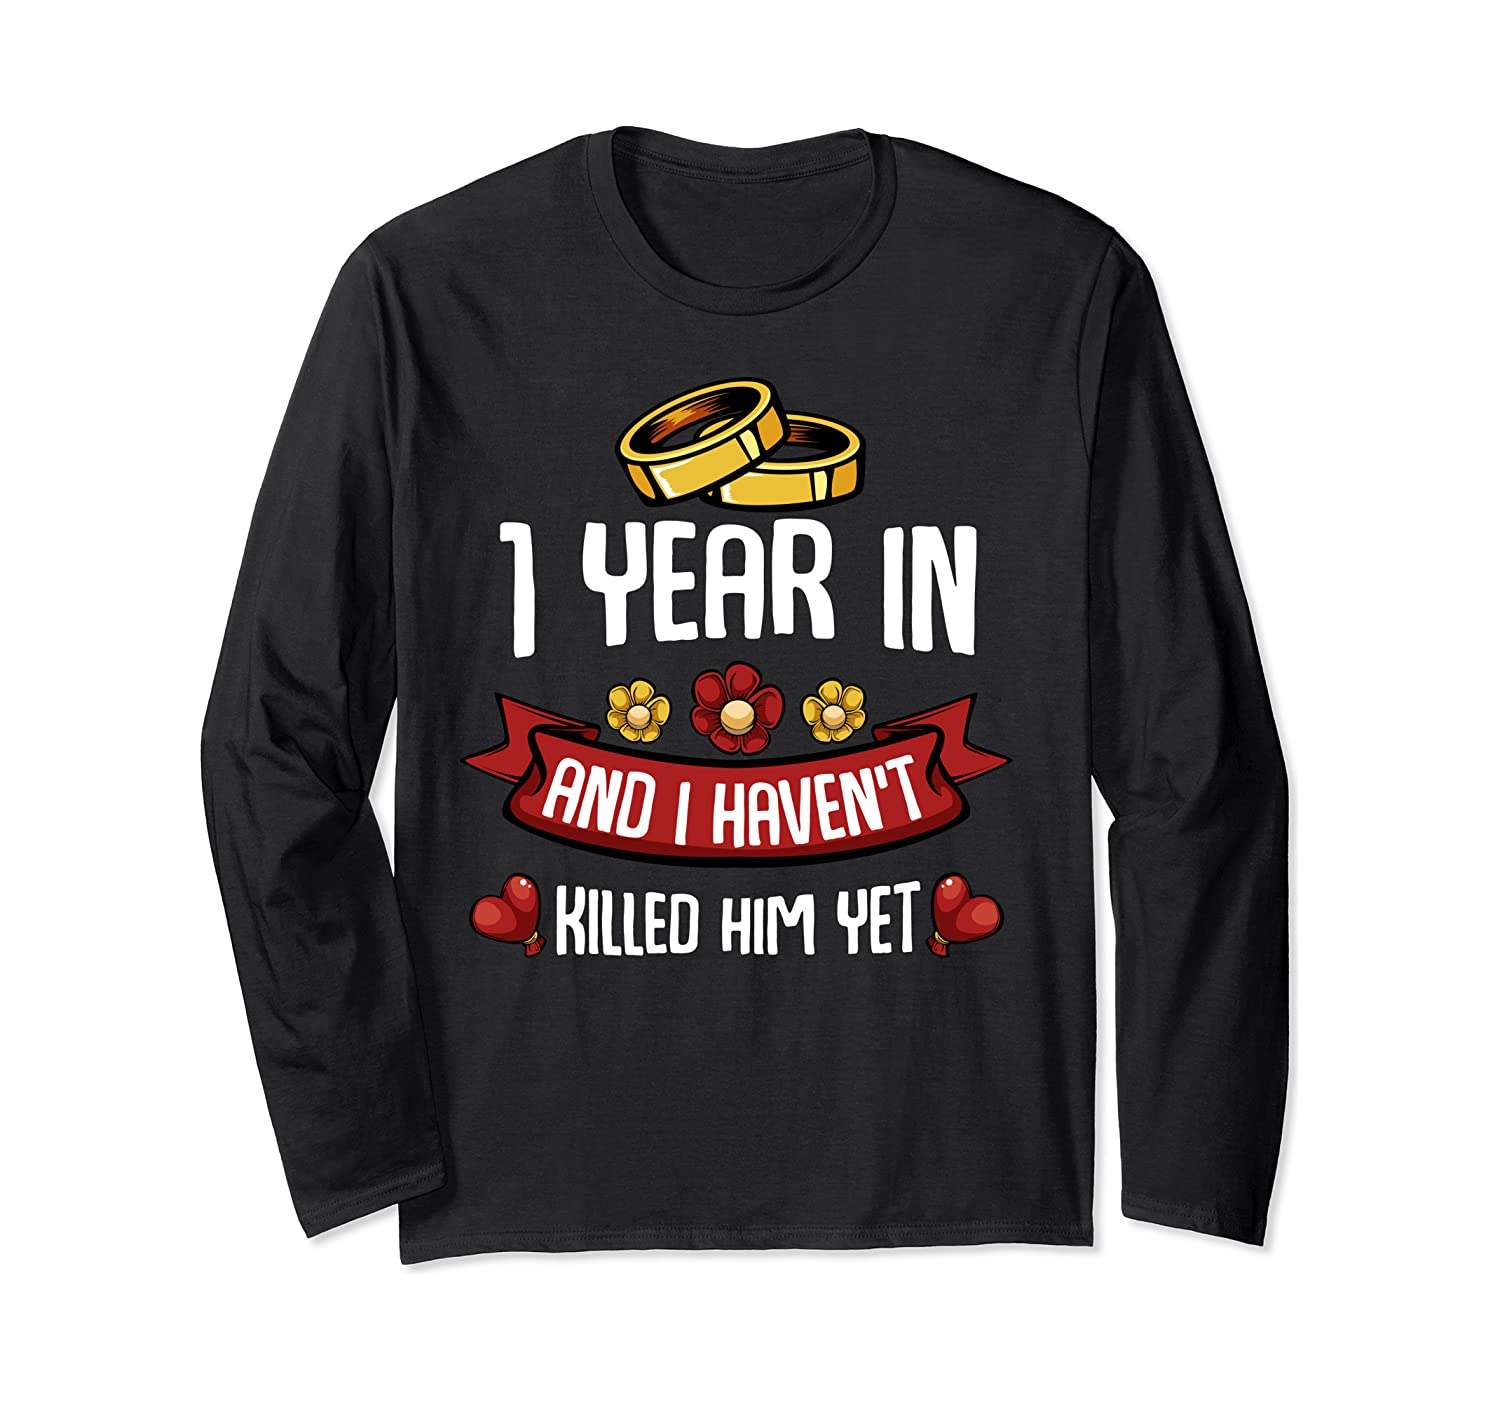 1 Year In And I haven't Killed Him Yet Marriage Wedding Gift Long Sleeve T-Shirt